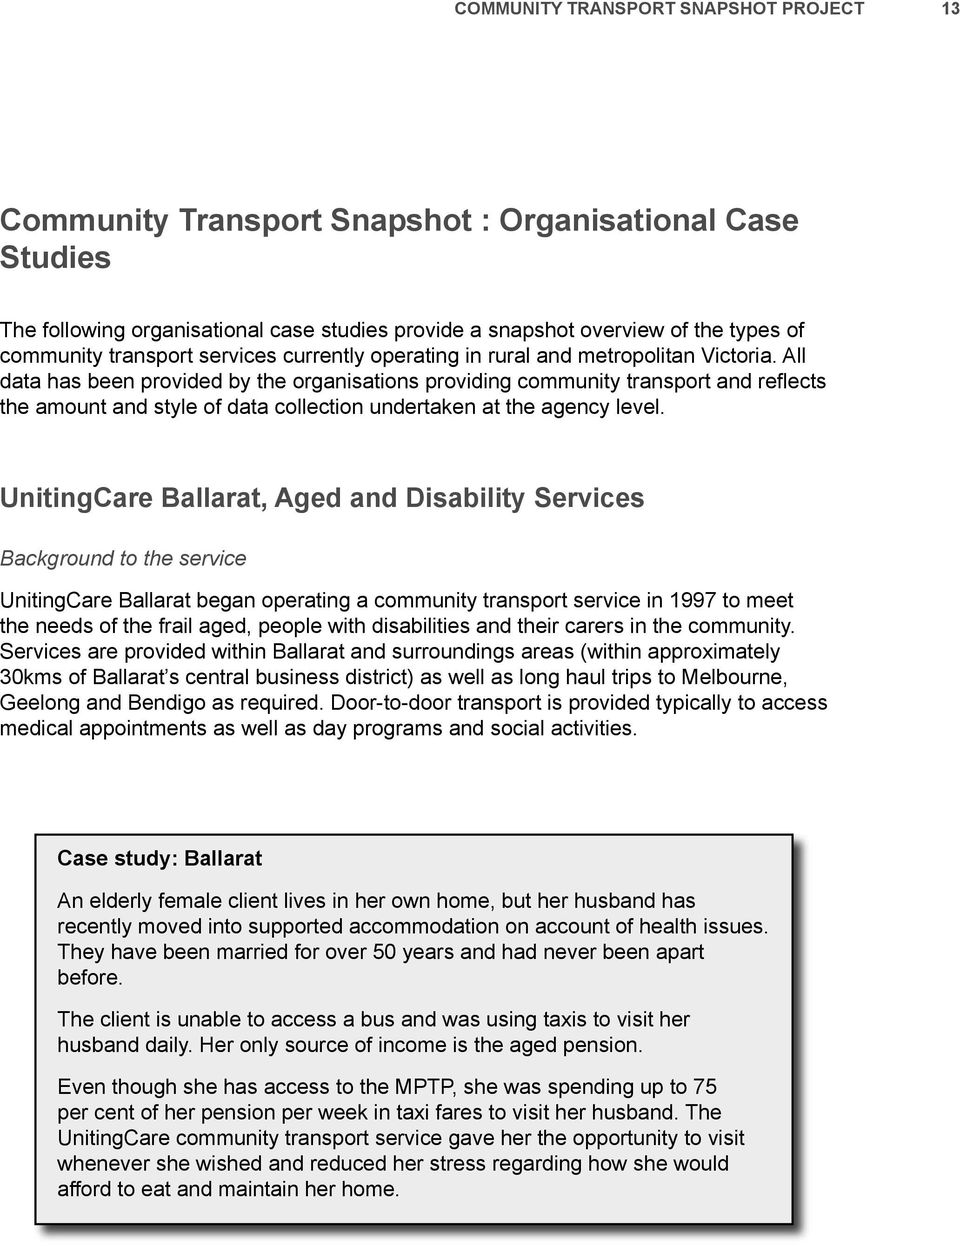 All data has been provided by the organisations providing community transport and reflects the amount and style of data collection undertaken at the agency level.